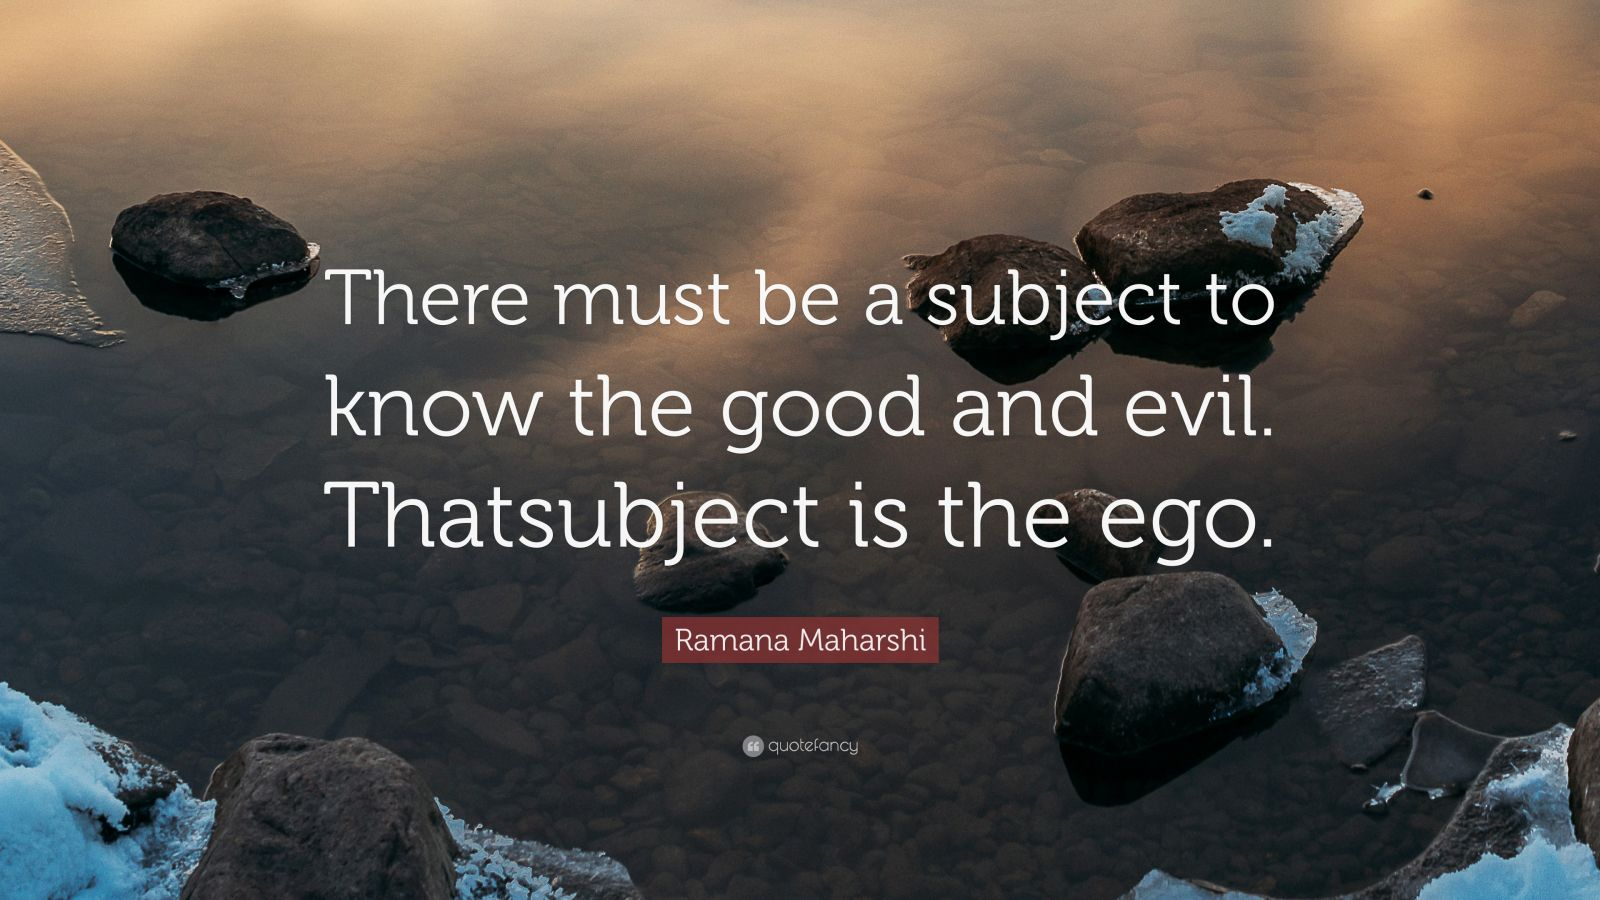 """Ramana Maharshi Quote: """"There must be a subject to know the good and evil. Thatsubject is the ego."""""""